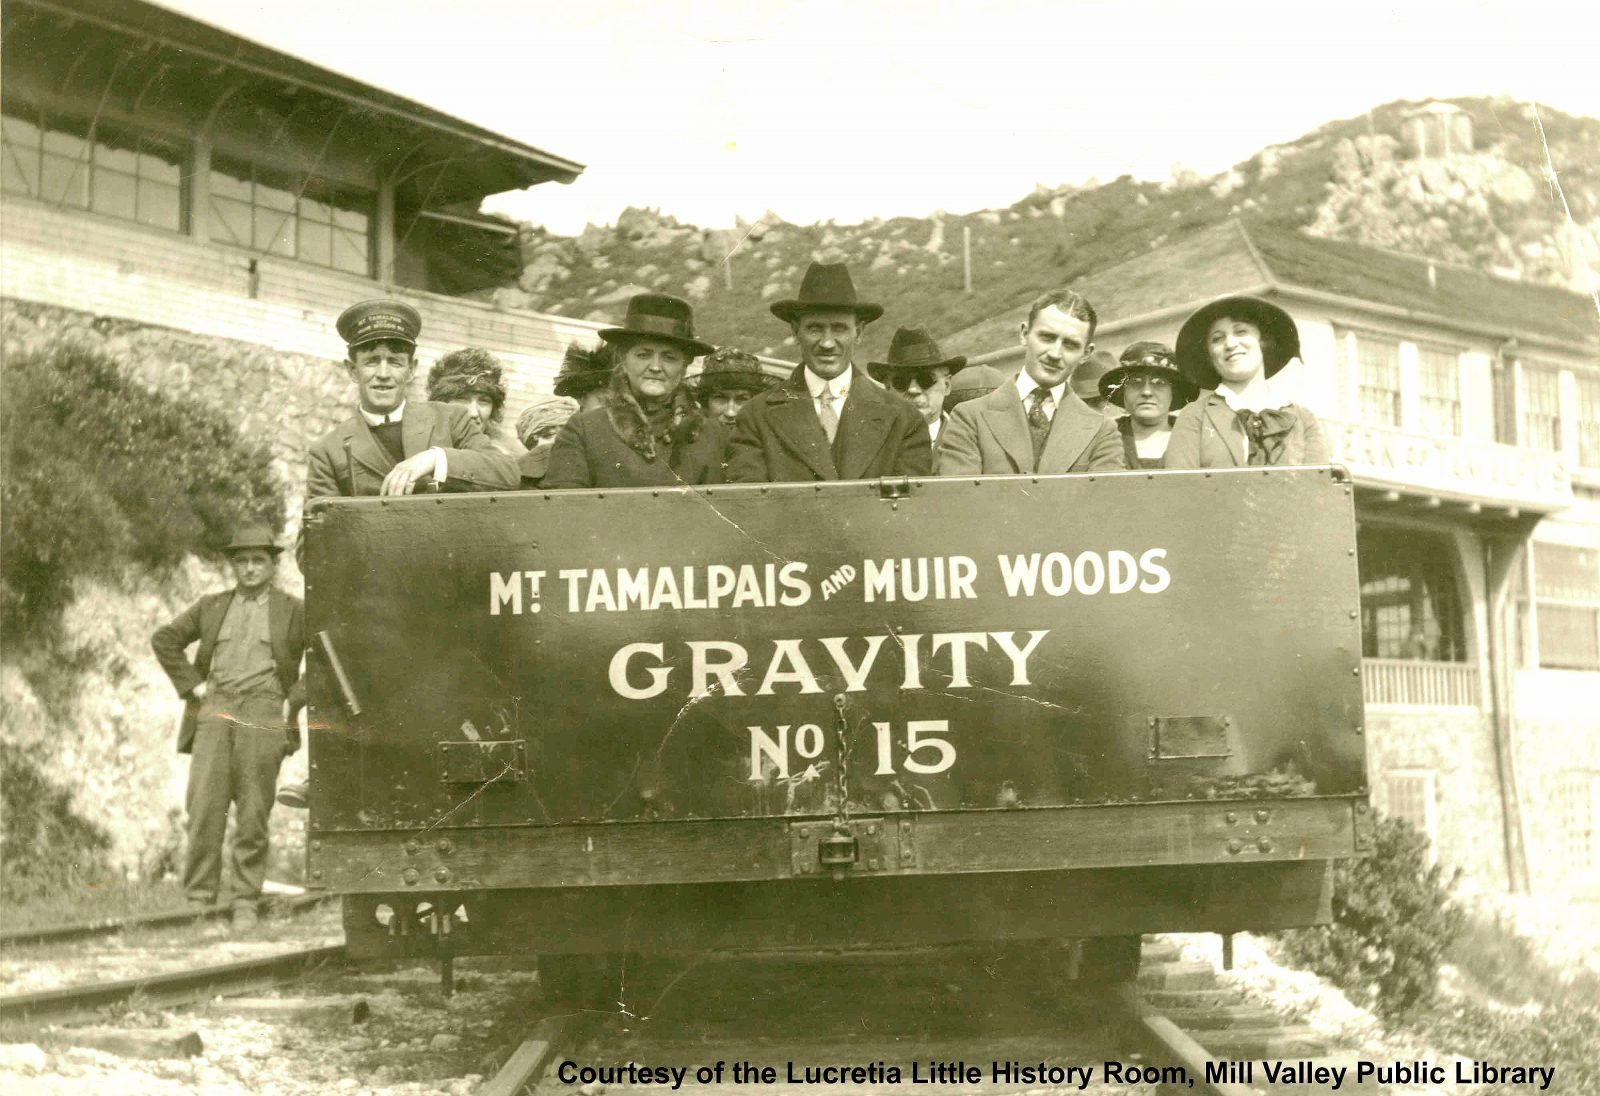 Mt Tamalpais and Muir Woods Railroad Gravity Car on East Peak of Mt Tamalpais